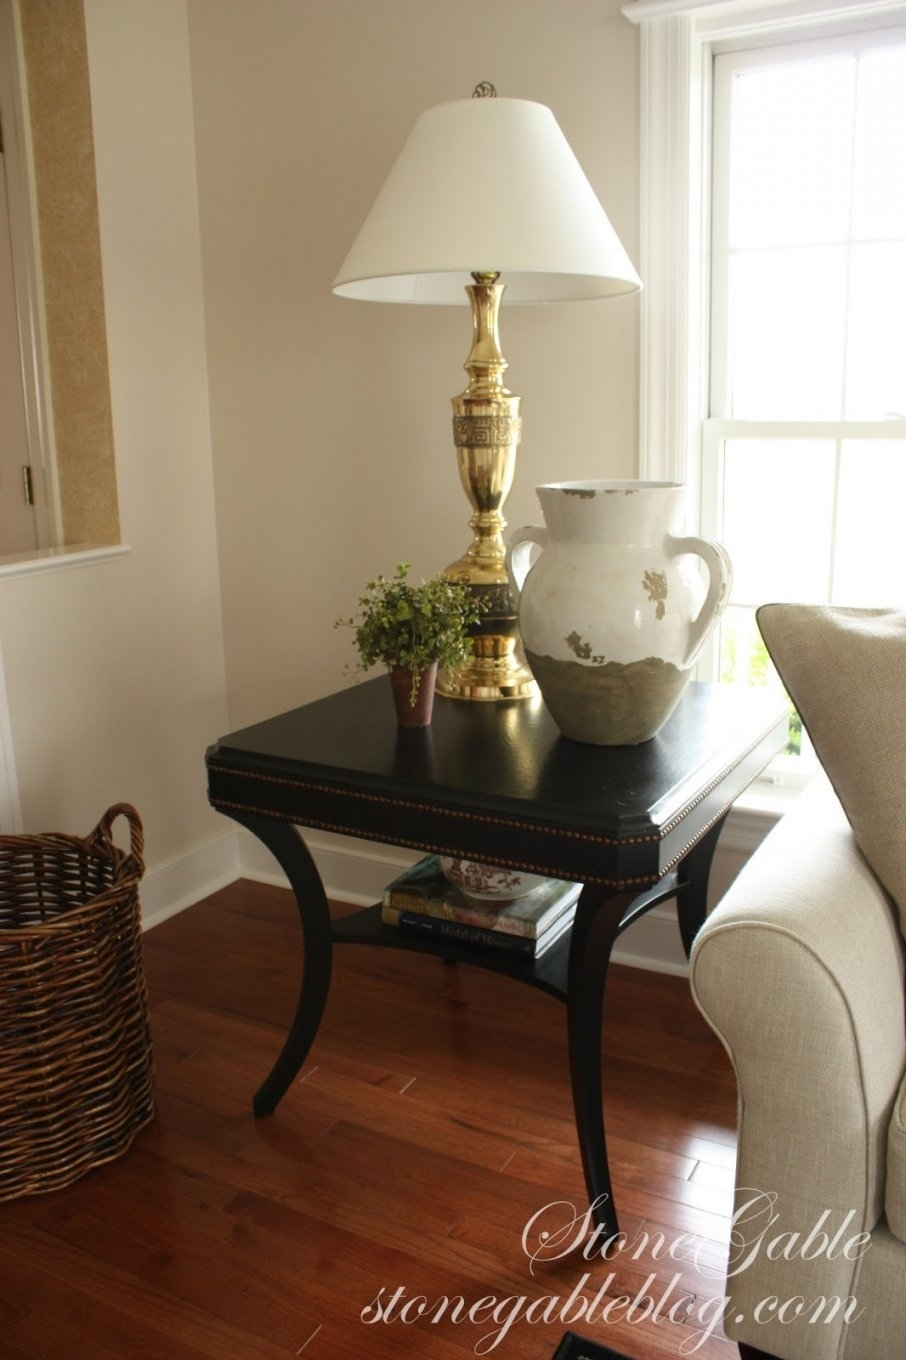 Inspiration about Living Room End Table Lamps Within Living Room End Table Lamps (#12 of 15)